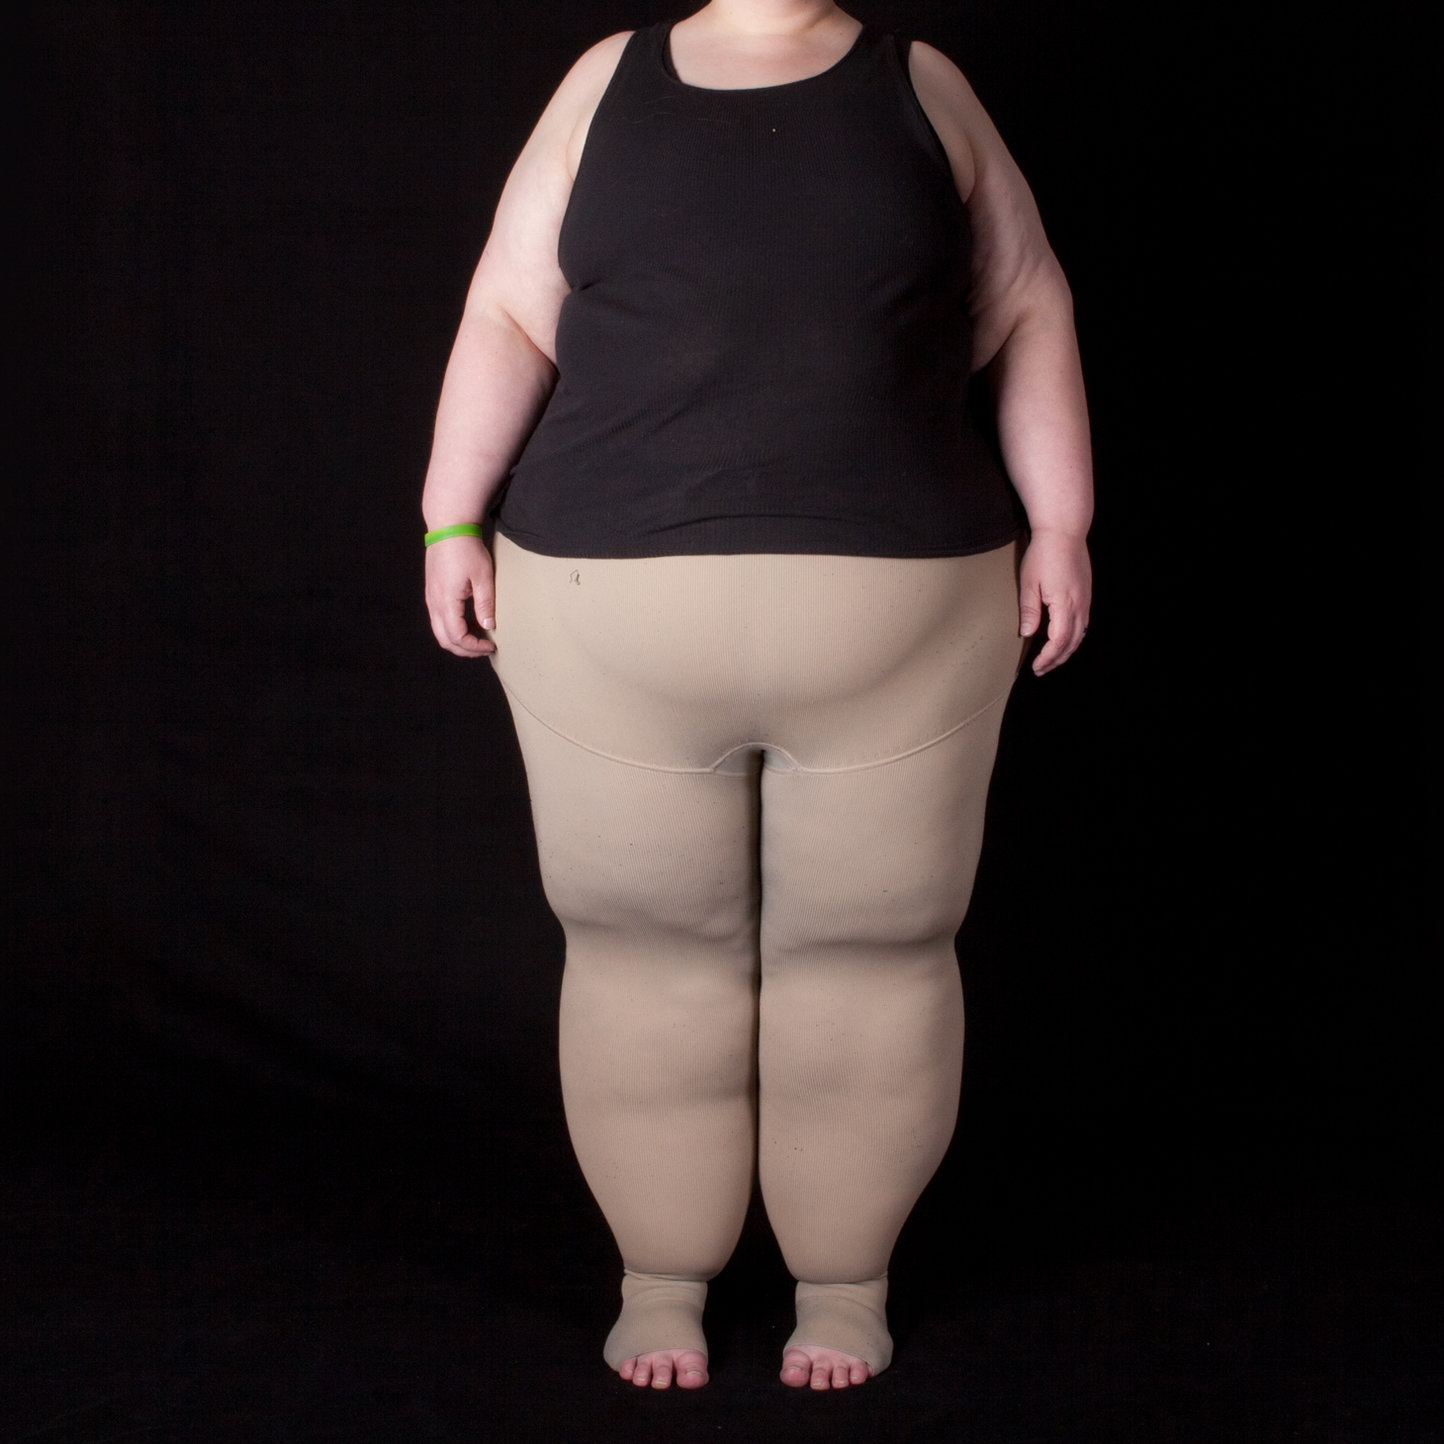 Photo by Fat Disorders Research Society  compression  Compression refers to articles of 'medical' clothing that literally compress the tissue underneath it. Think of it as giving your skin some extra help in propelling lymph fluid back to the trunk so your body can process it. By gently compressing tissue, fluid should not build up and cause problem